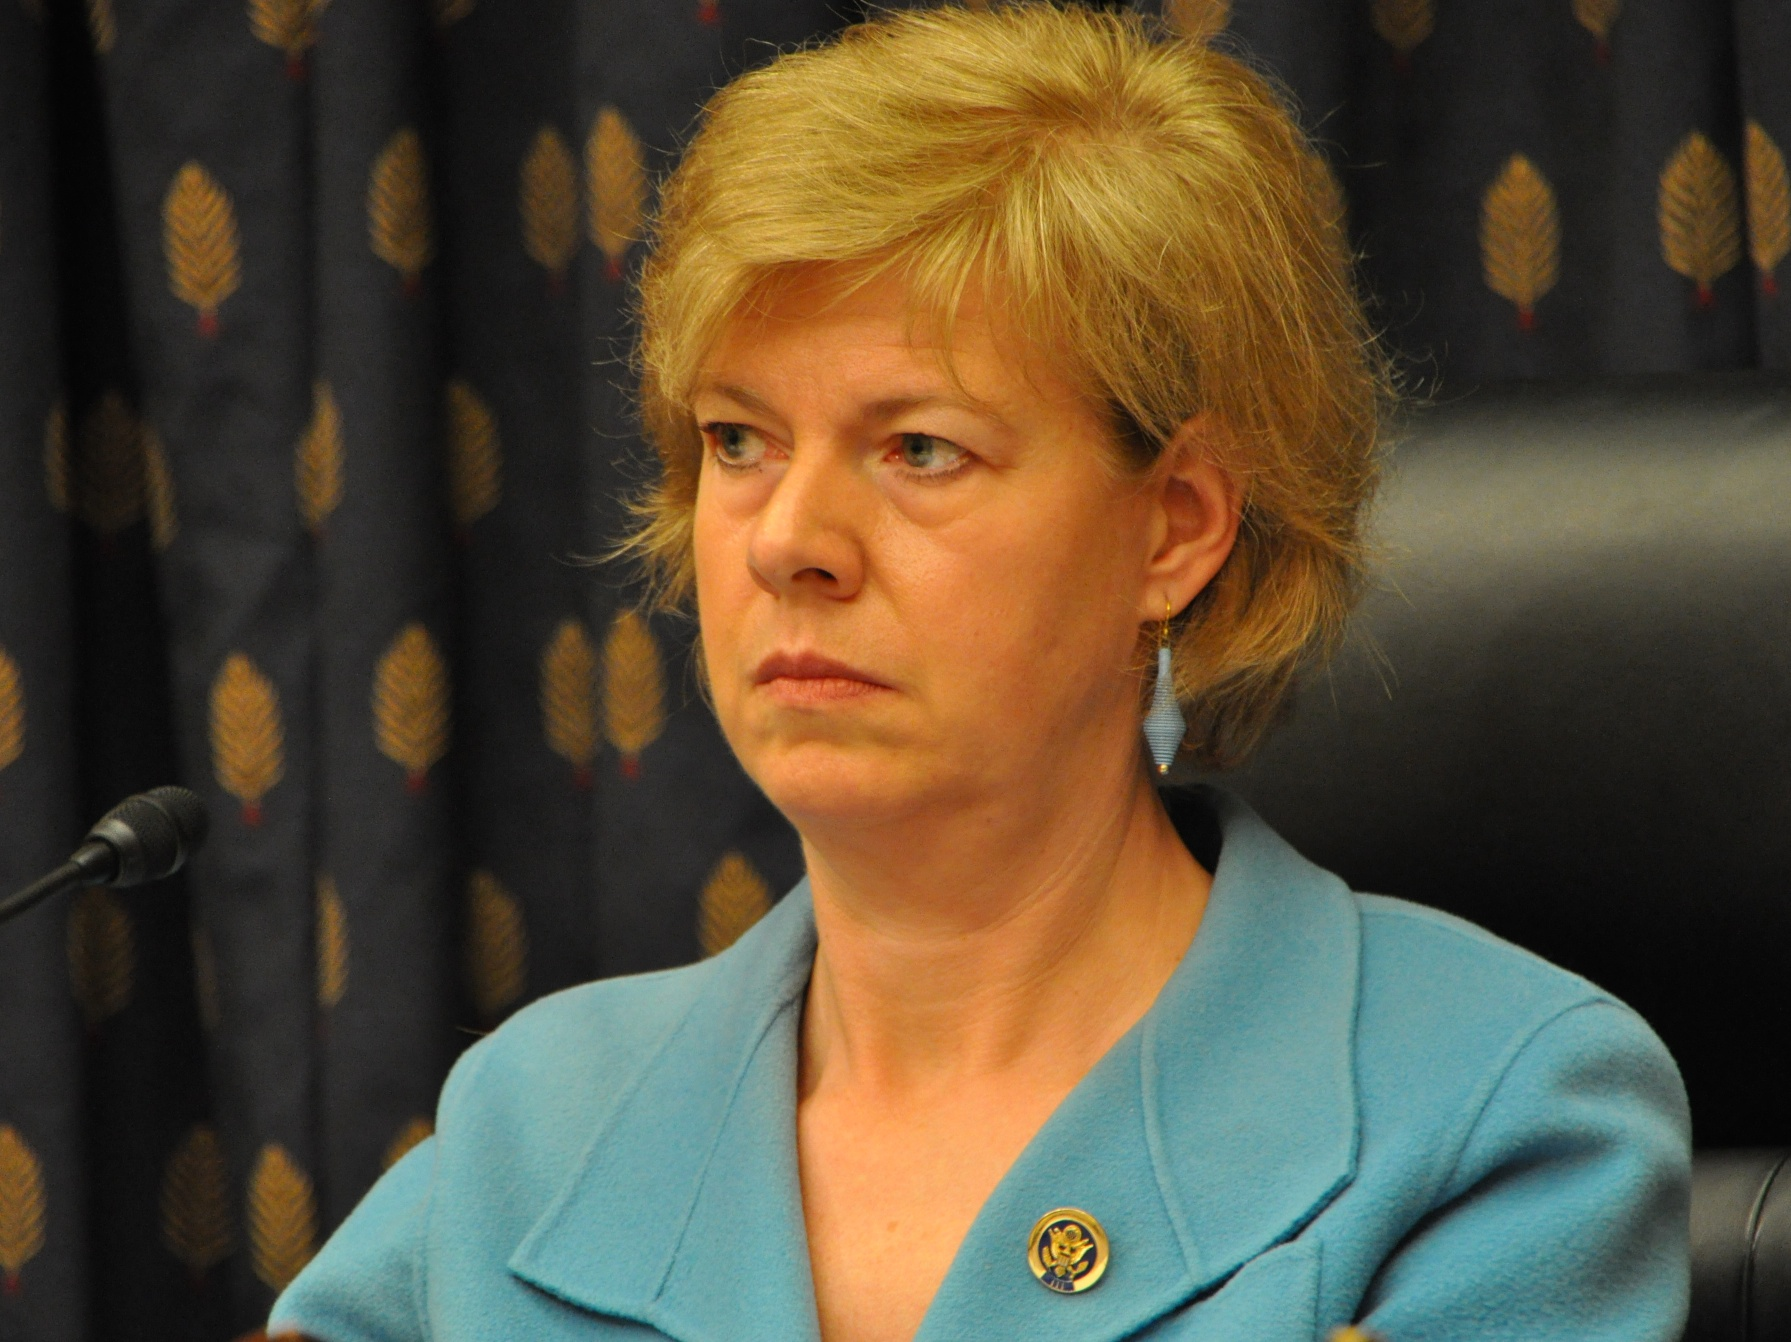 WI Senate: Baldwin Voted Present on Resolution to Condemn Ahmadinejad Genocidal Remarks